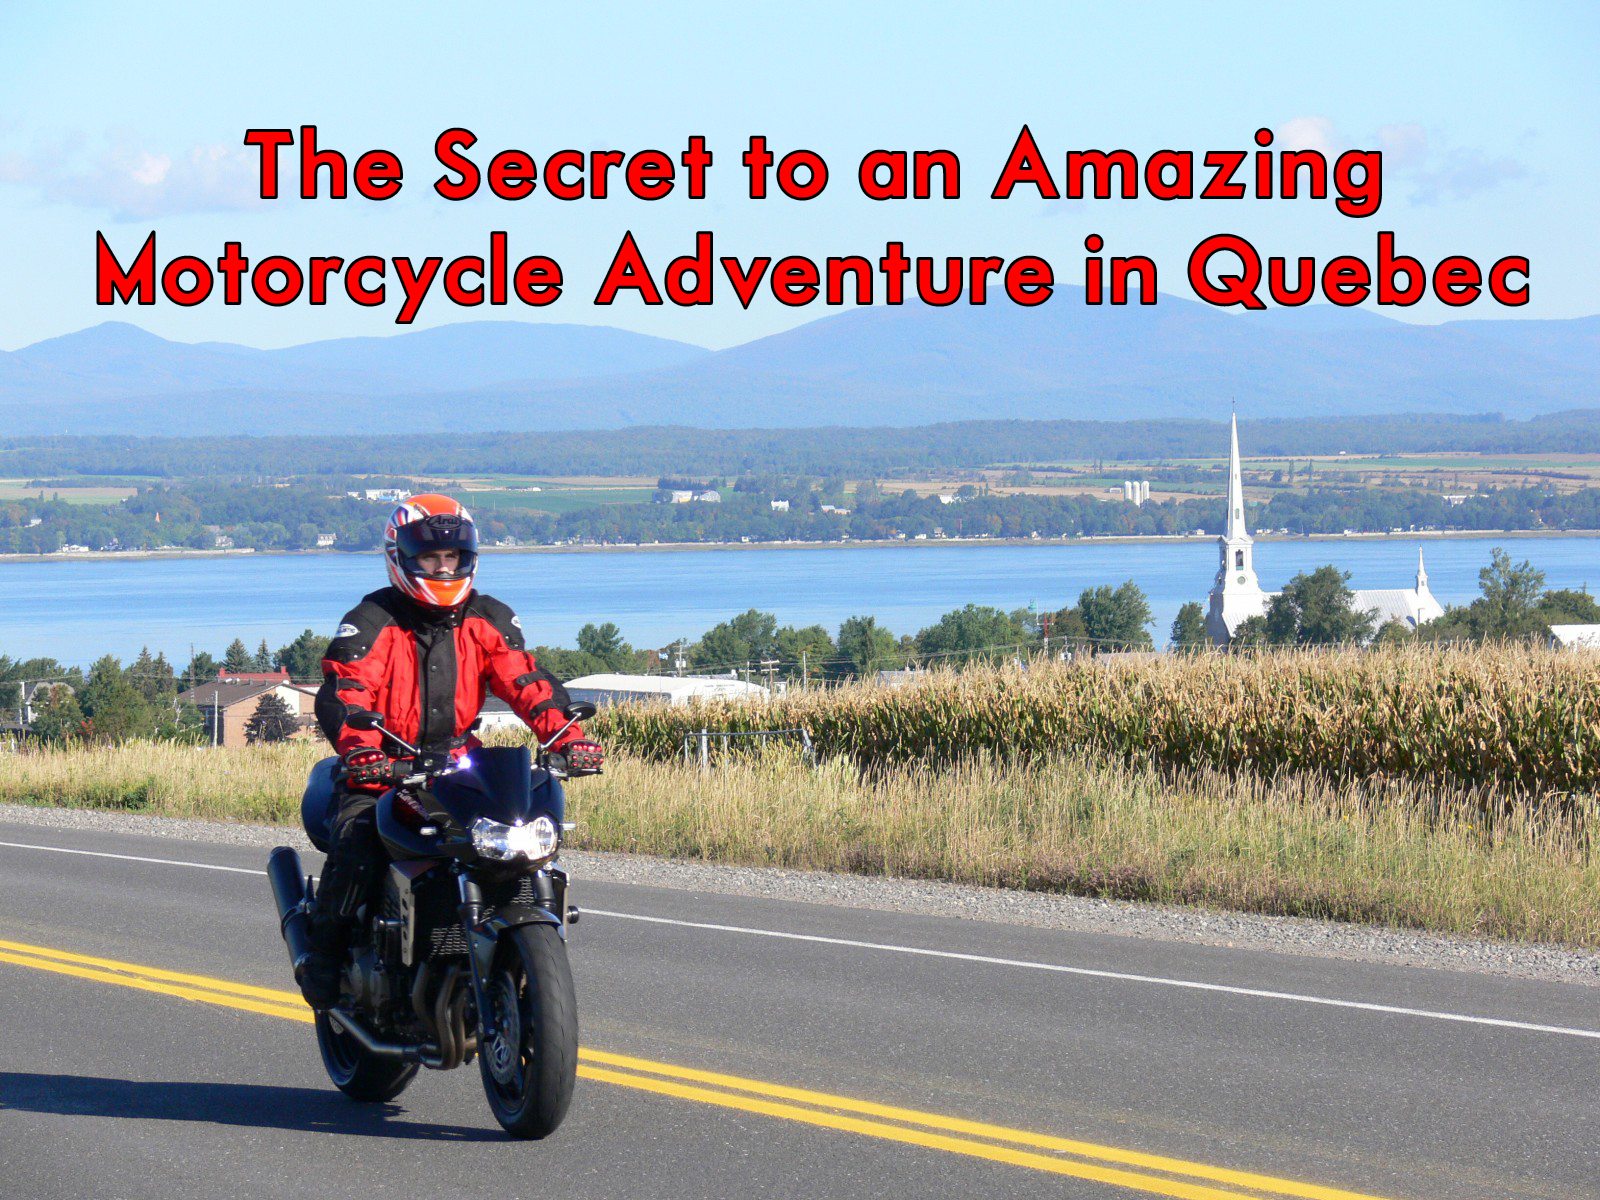 free motorcycle parking uxbridge  The Secret to an Amazing Motorcycle Adventure in Quebec